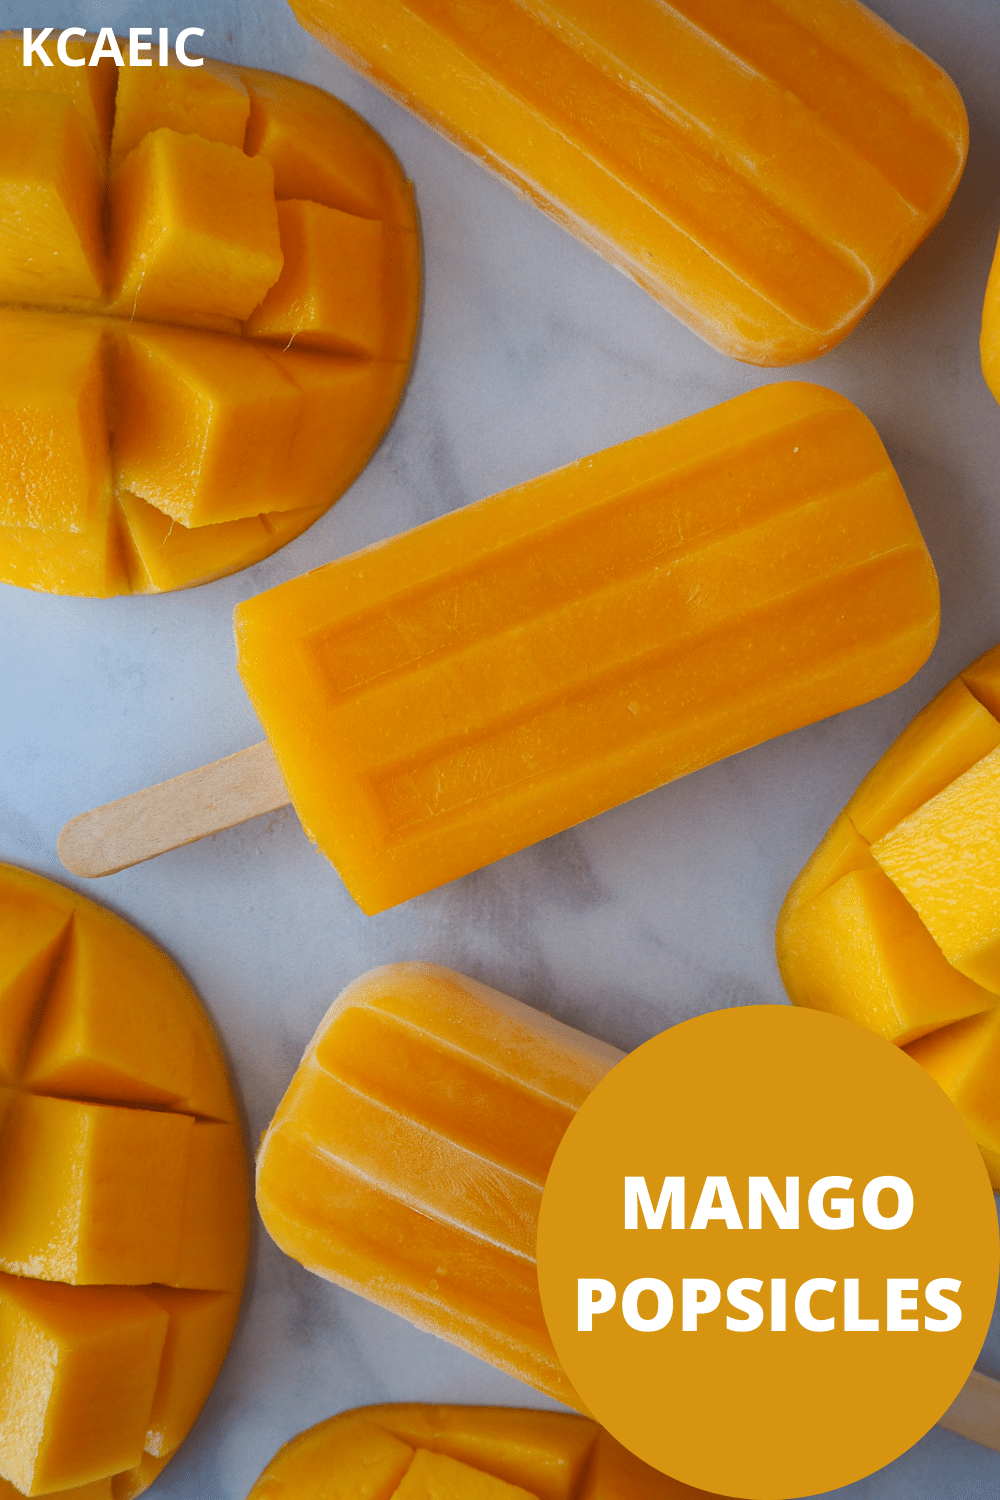 Row of three mango popsicles in a vertical row, surrounded by fresh mango, with text overlay, KCAEIC and mango popsicles.